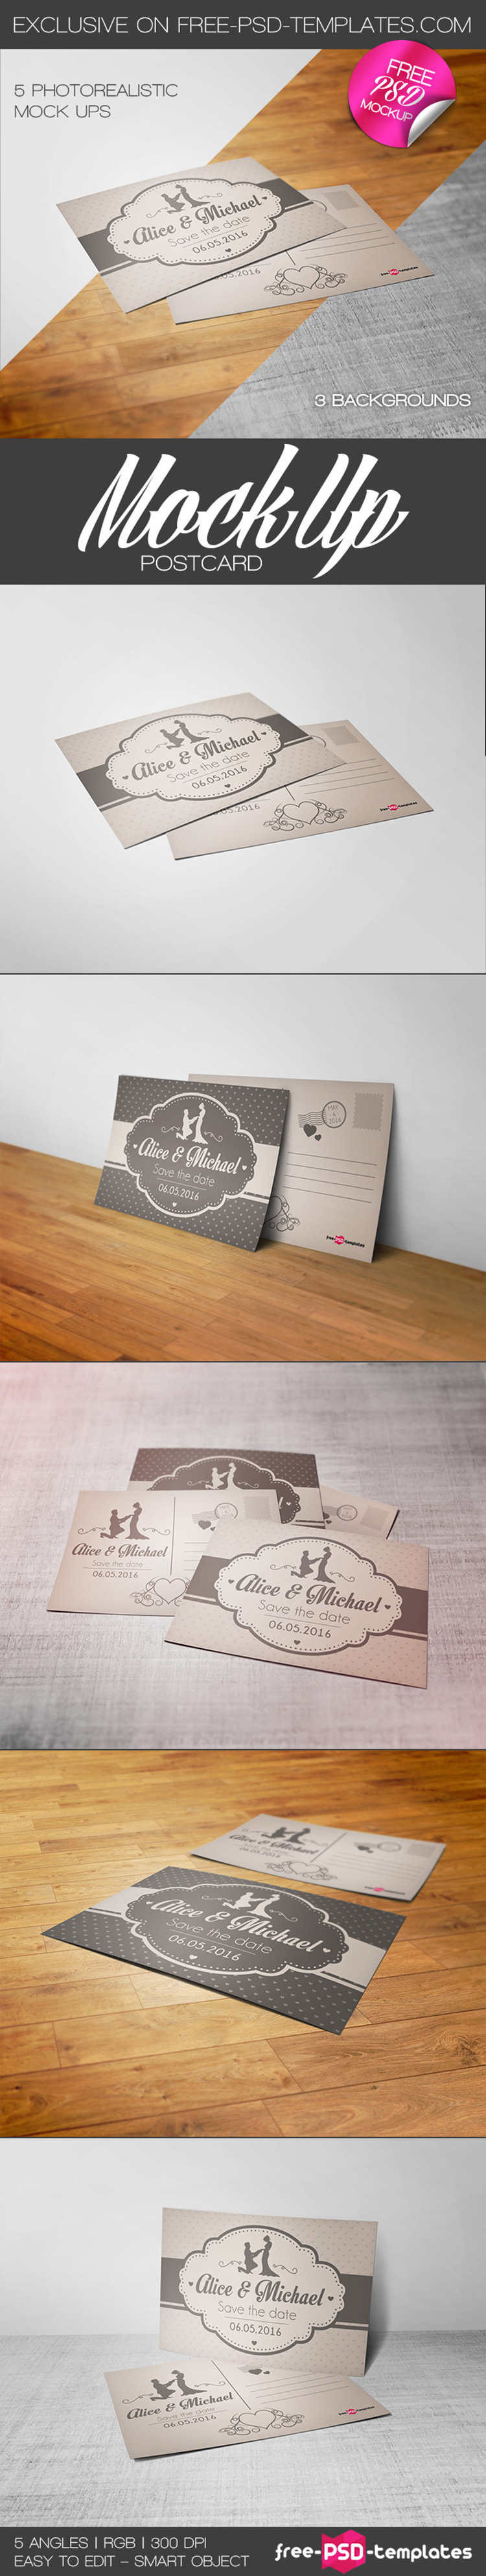 Free Postcard Mock-ups in PSD | Free PSD Templates